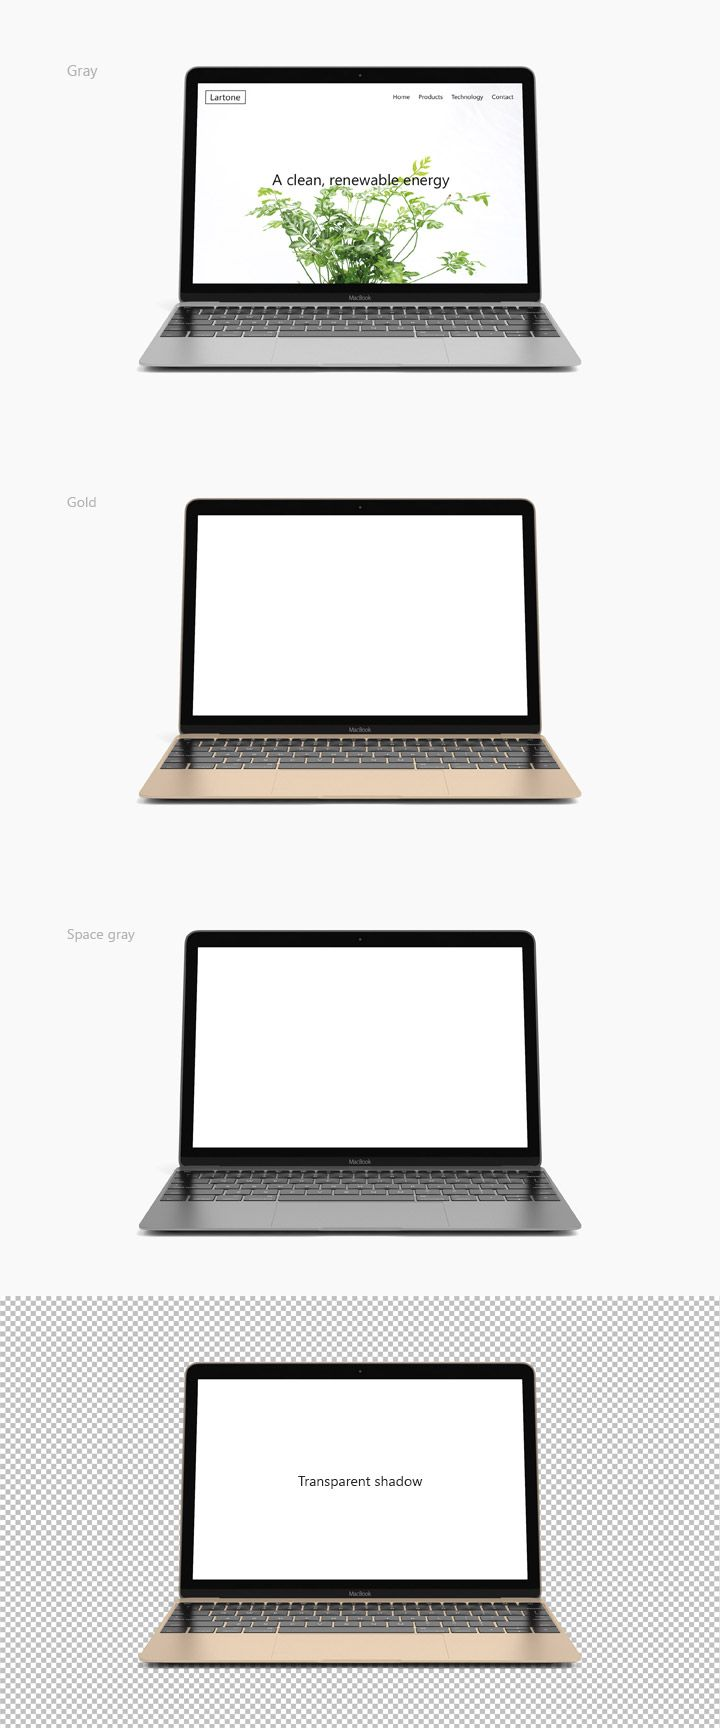 Macbook 2015 mock up available in Gold, Gray and Space gray. The shadow is transparent to allow you to use this mock up everywhere easily. Change quickly the screen content in second with the help of smart object.